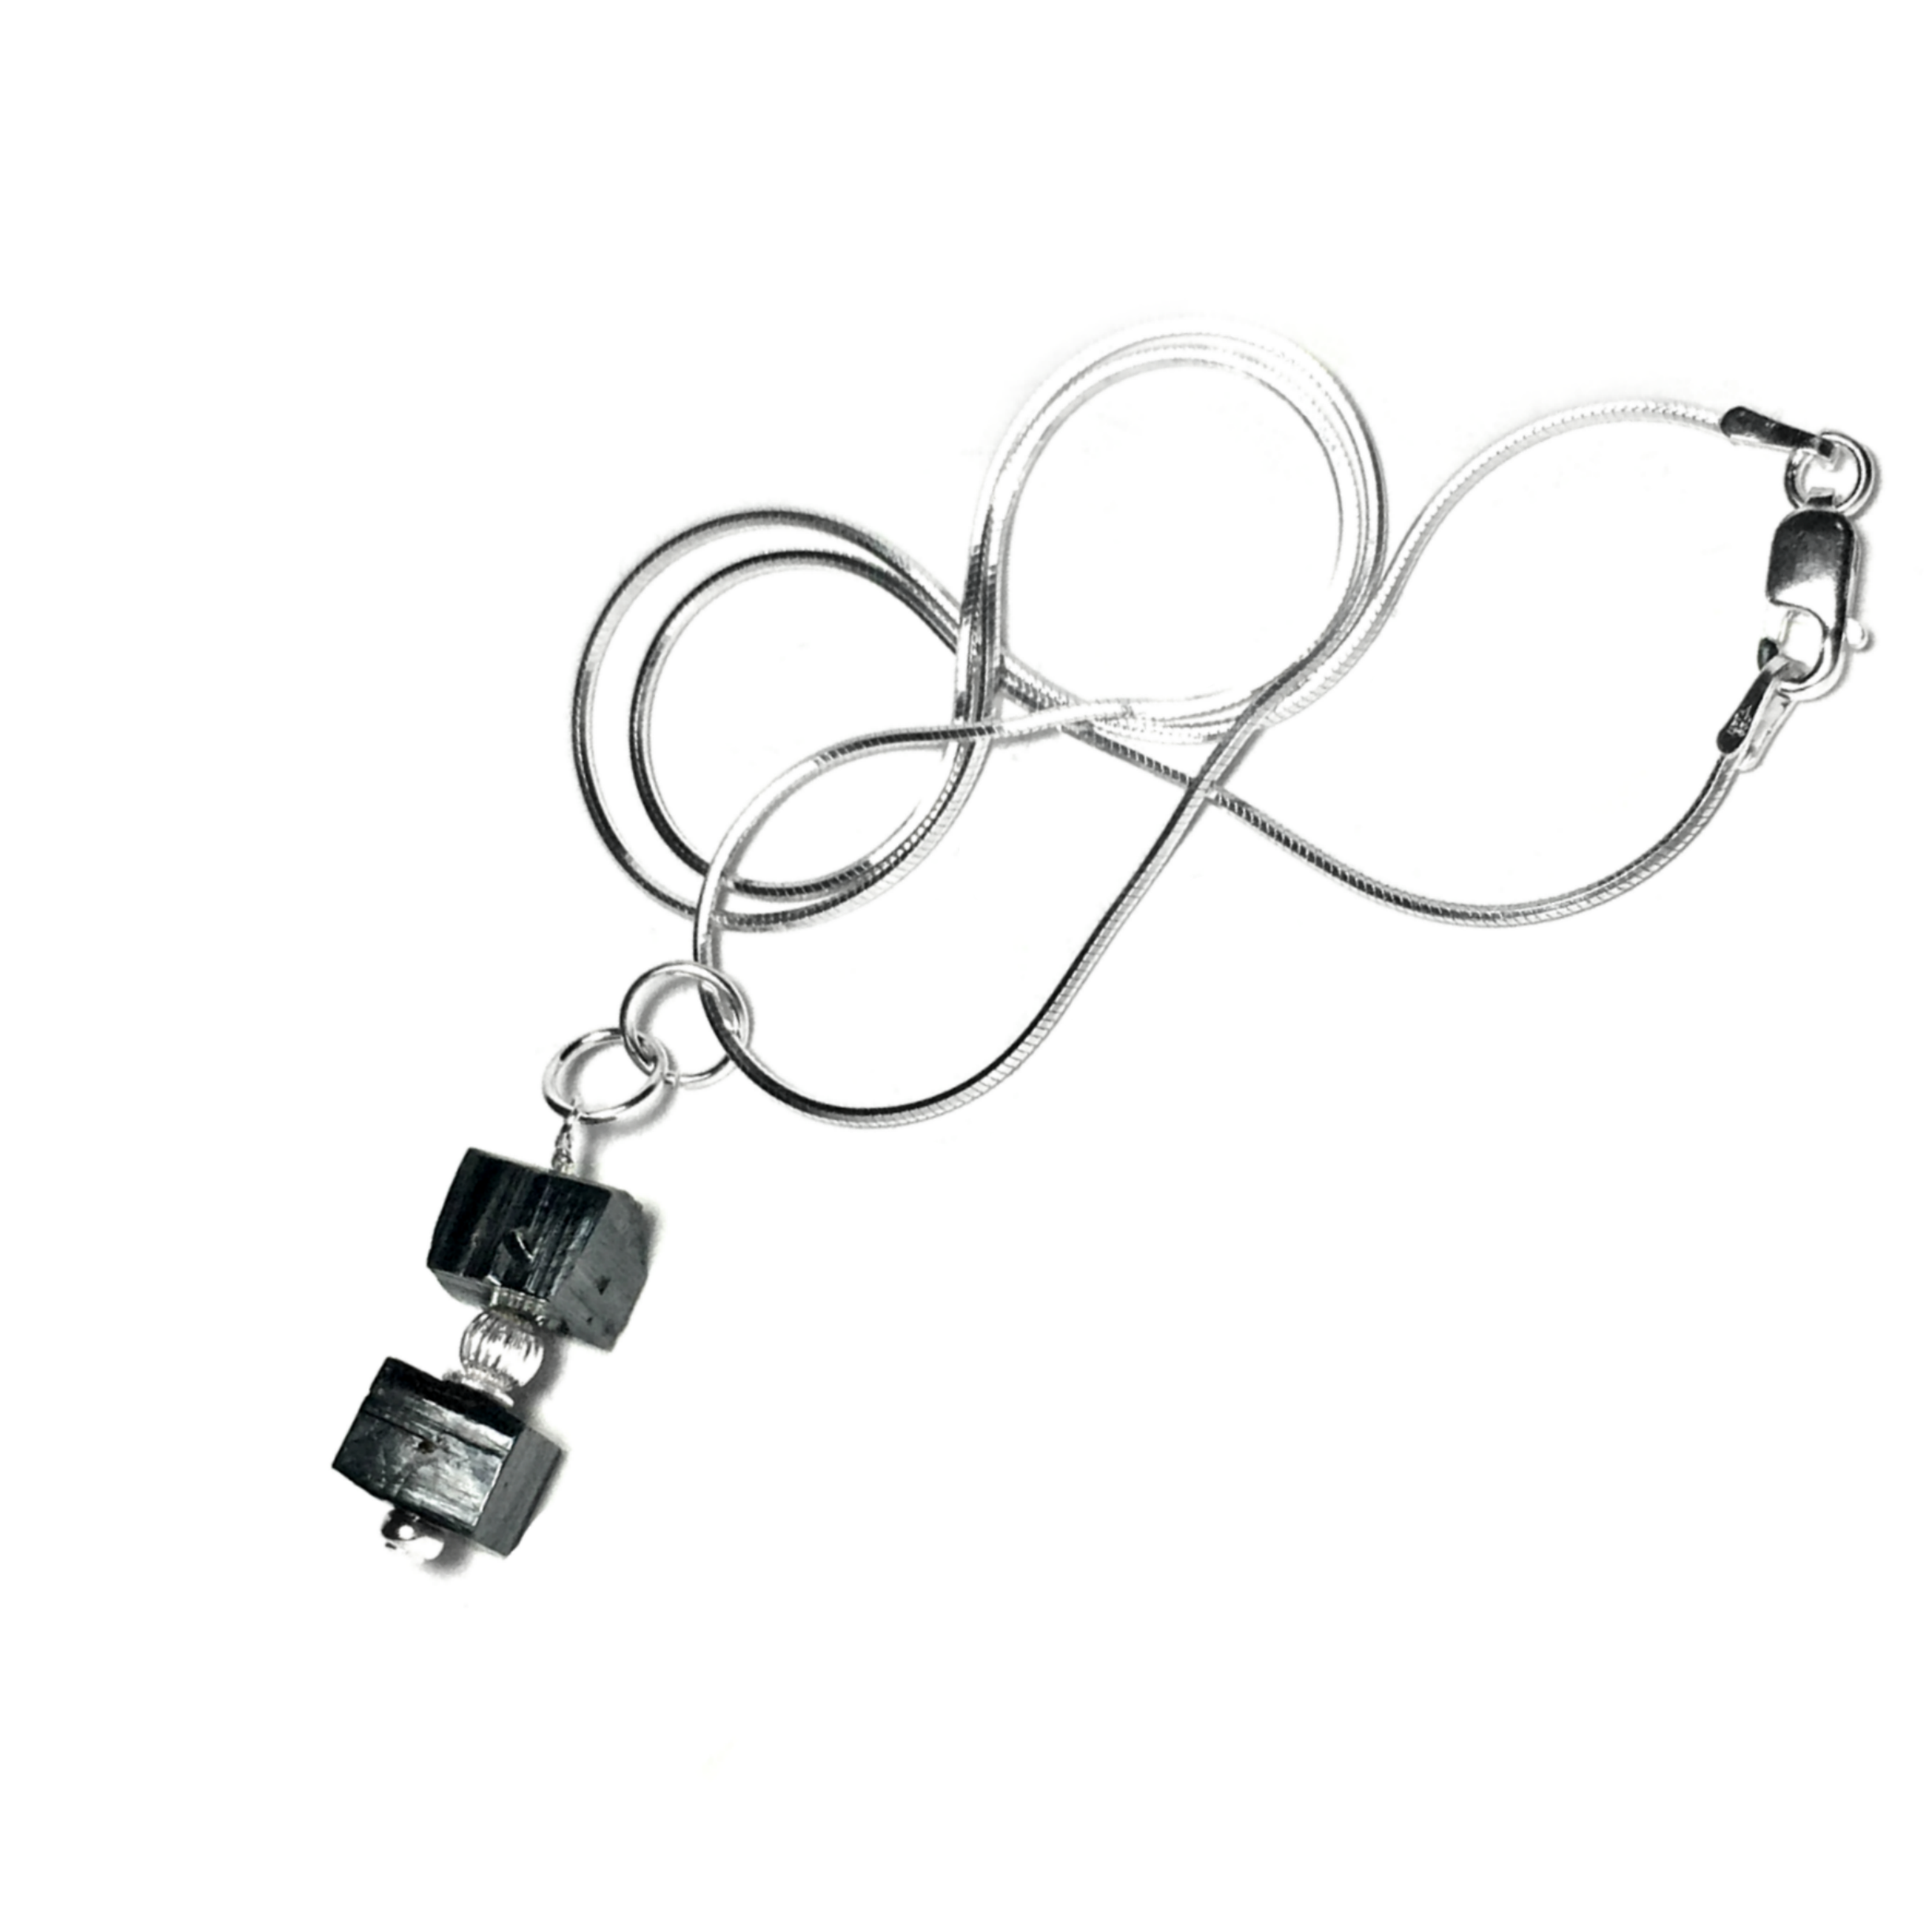 Visit us to view this sterling silver geometric Sierra Laguna Goethite Crystal necklace, and to check out our selection of other geometric, minimalist, modern, and clean, elegant mineral gemstone jewelry! Happy Holidays! http://etsy.me/2zPEcxJ6336 #geometric #jewelry